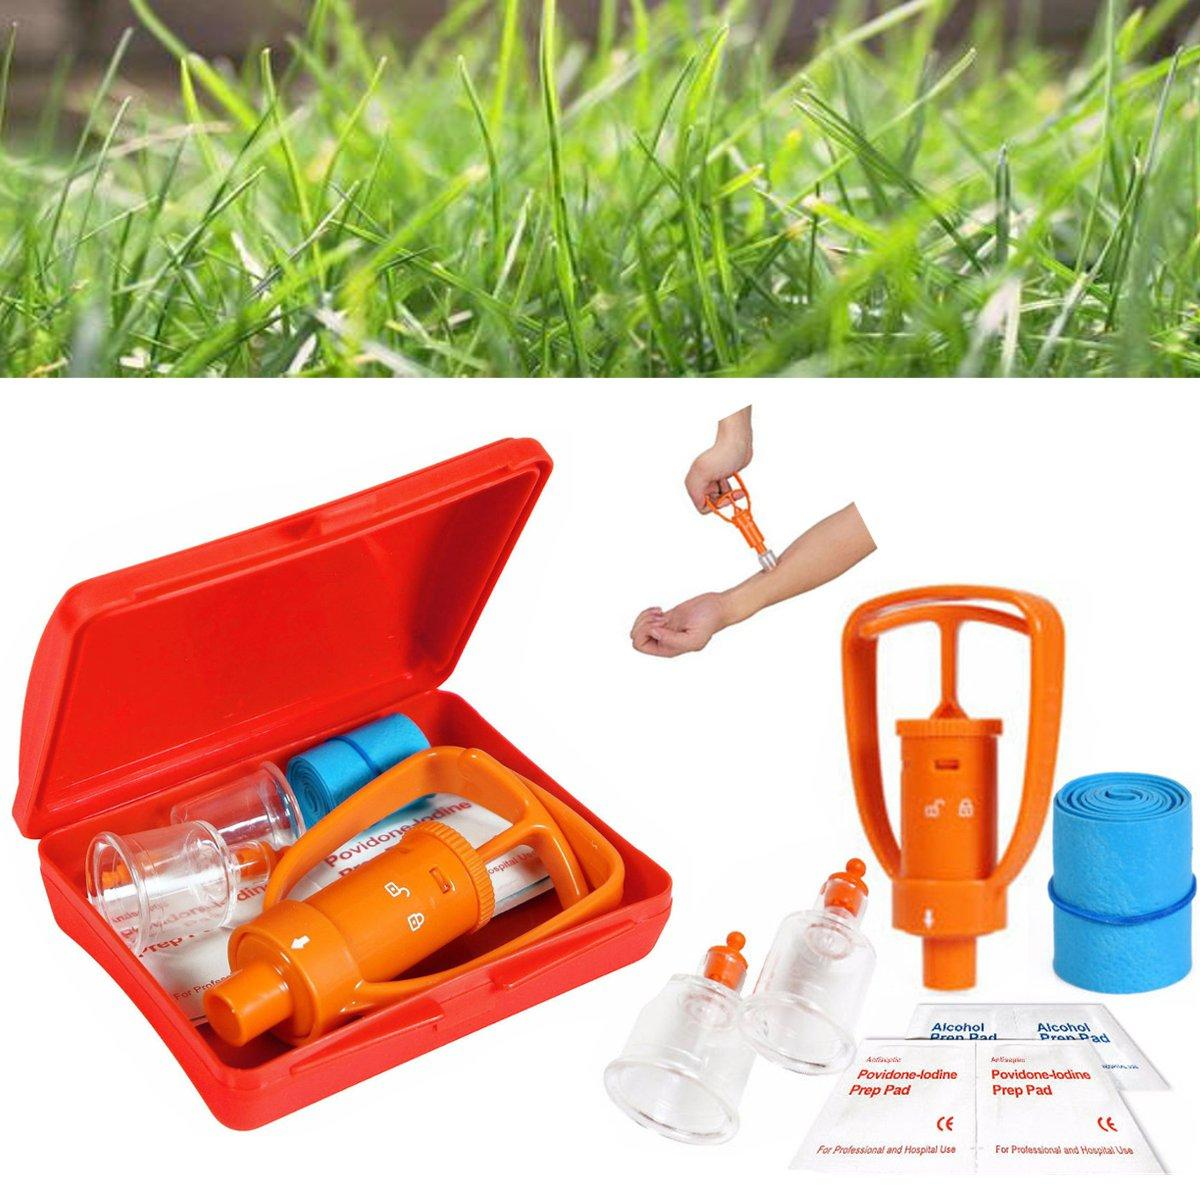 Emergency Venom Extractor Pump Portable Practical First Aid Kit Supplies Emergency Snake Bite Survival Tool Sos Less Expensive Security & Protection